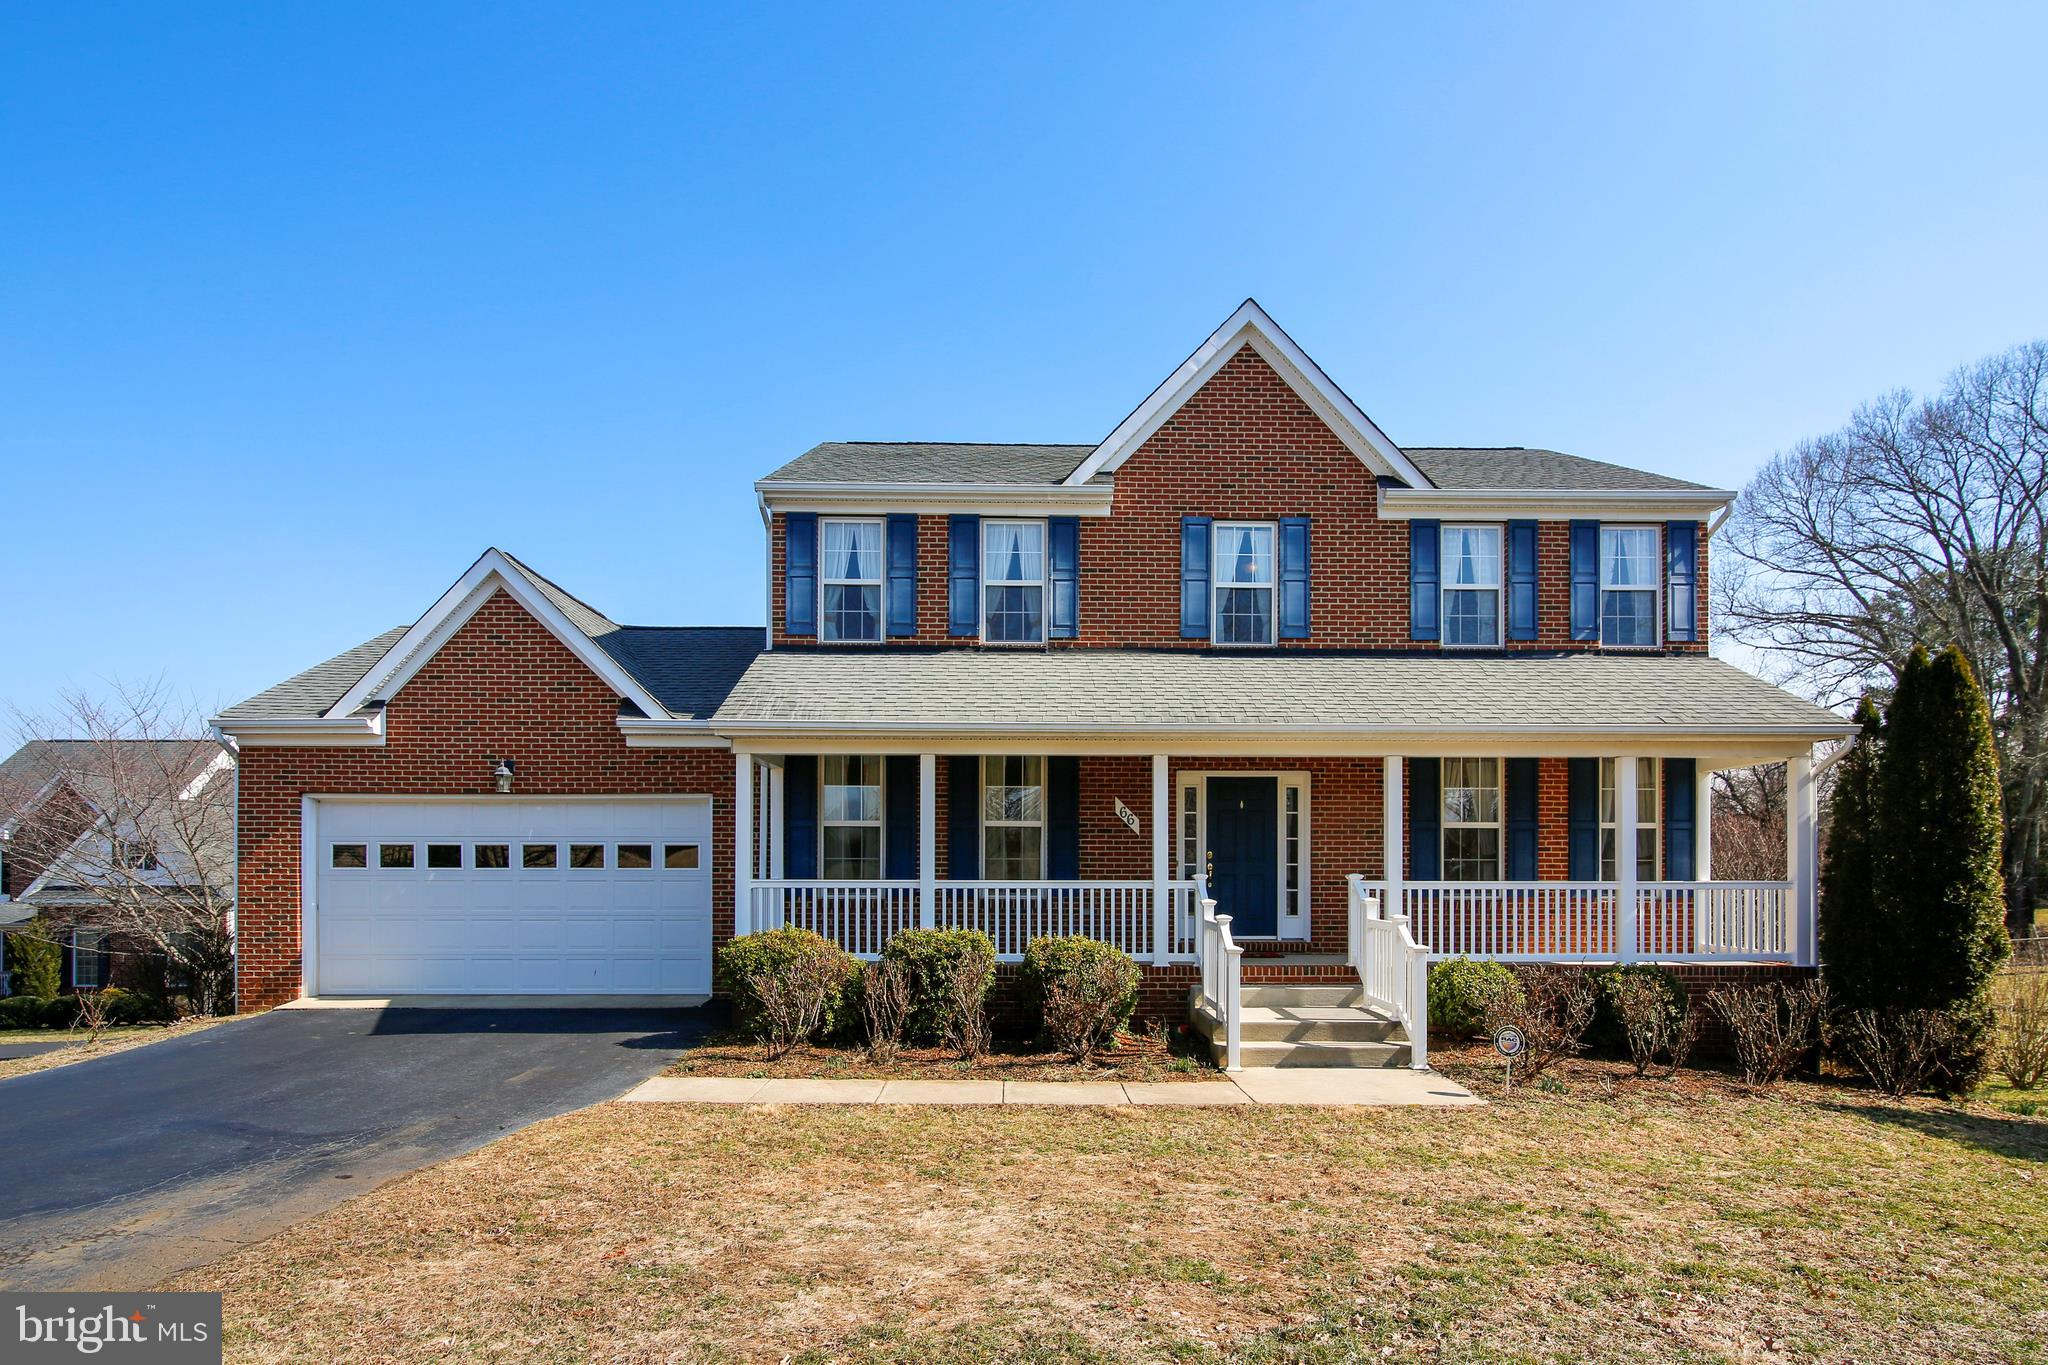 66 WILLOW CREEK, RUCKERSVILLE, VA 22968